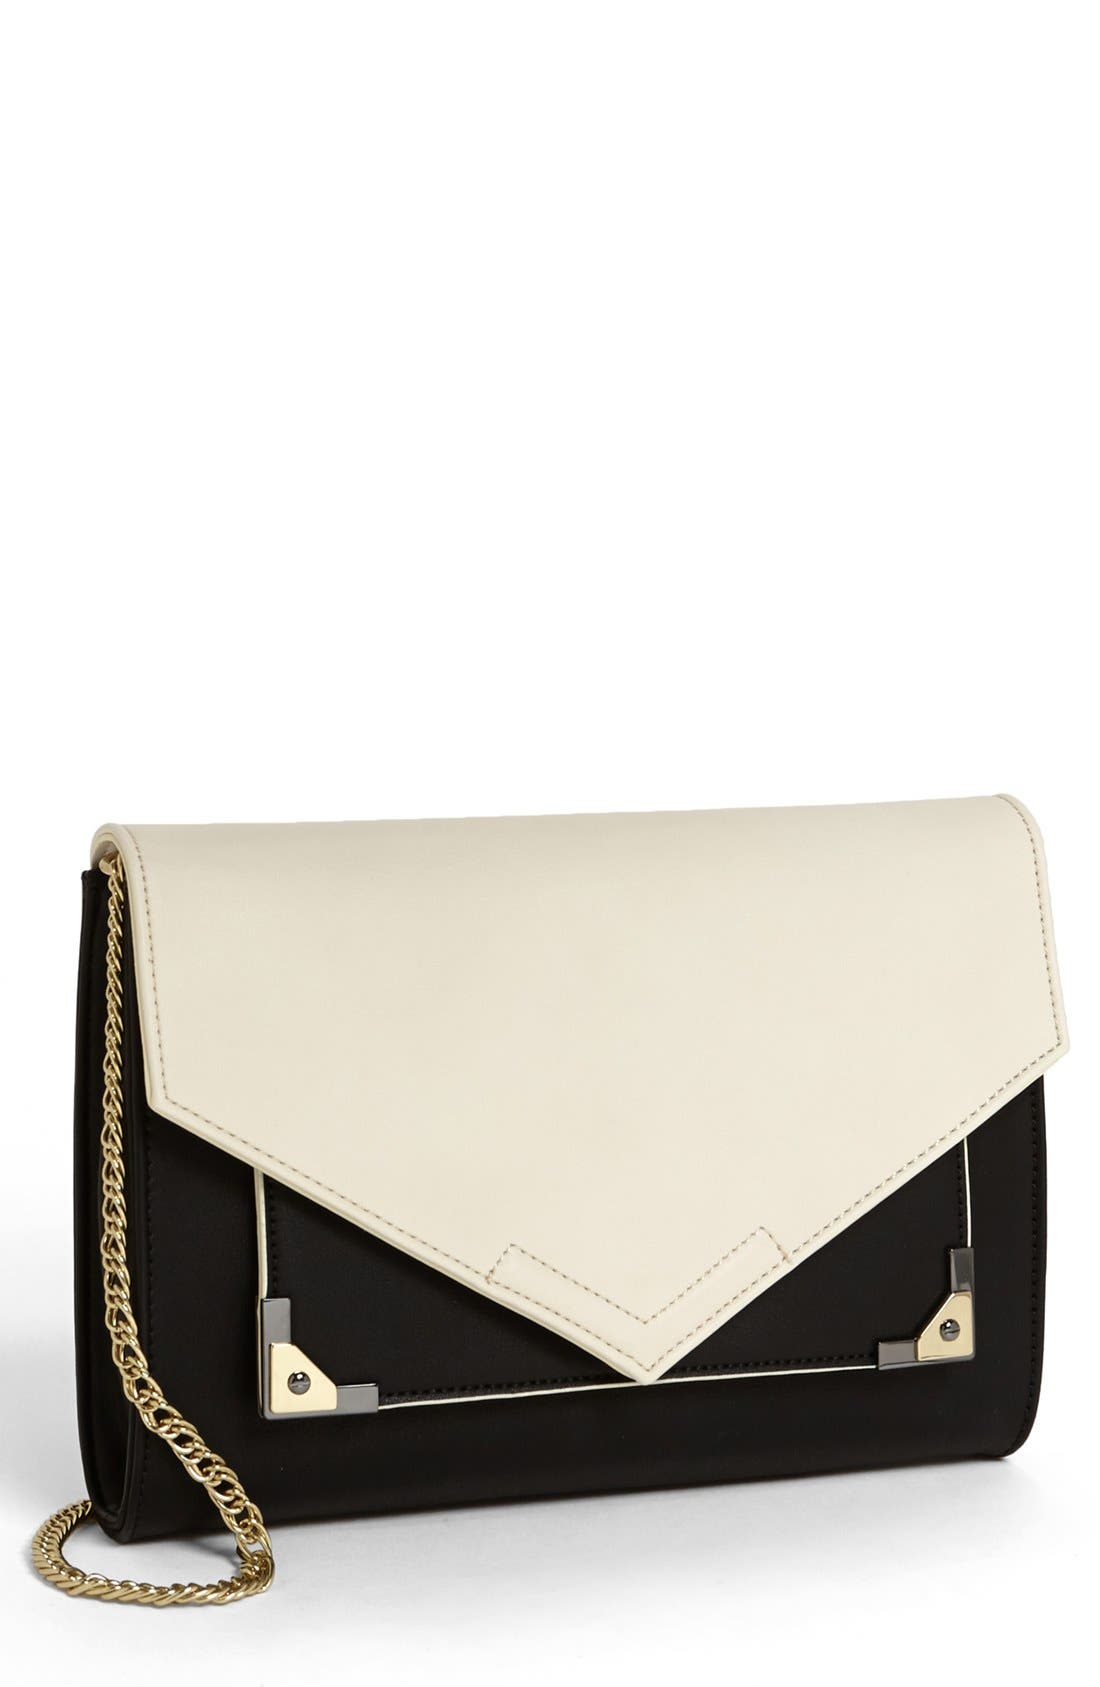 Alternate Image 1 Selected - Danielle Nicole 'Jaida' Faux Leather Clutch